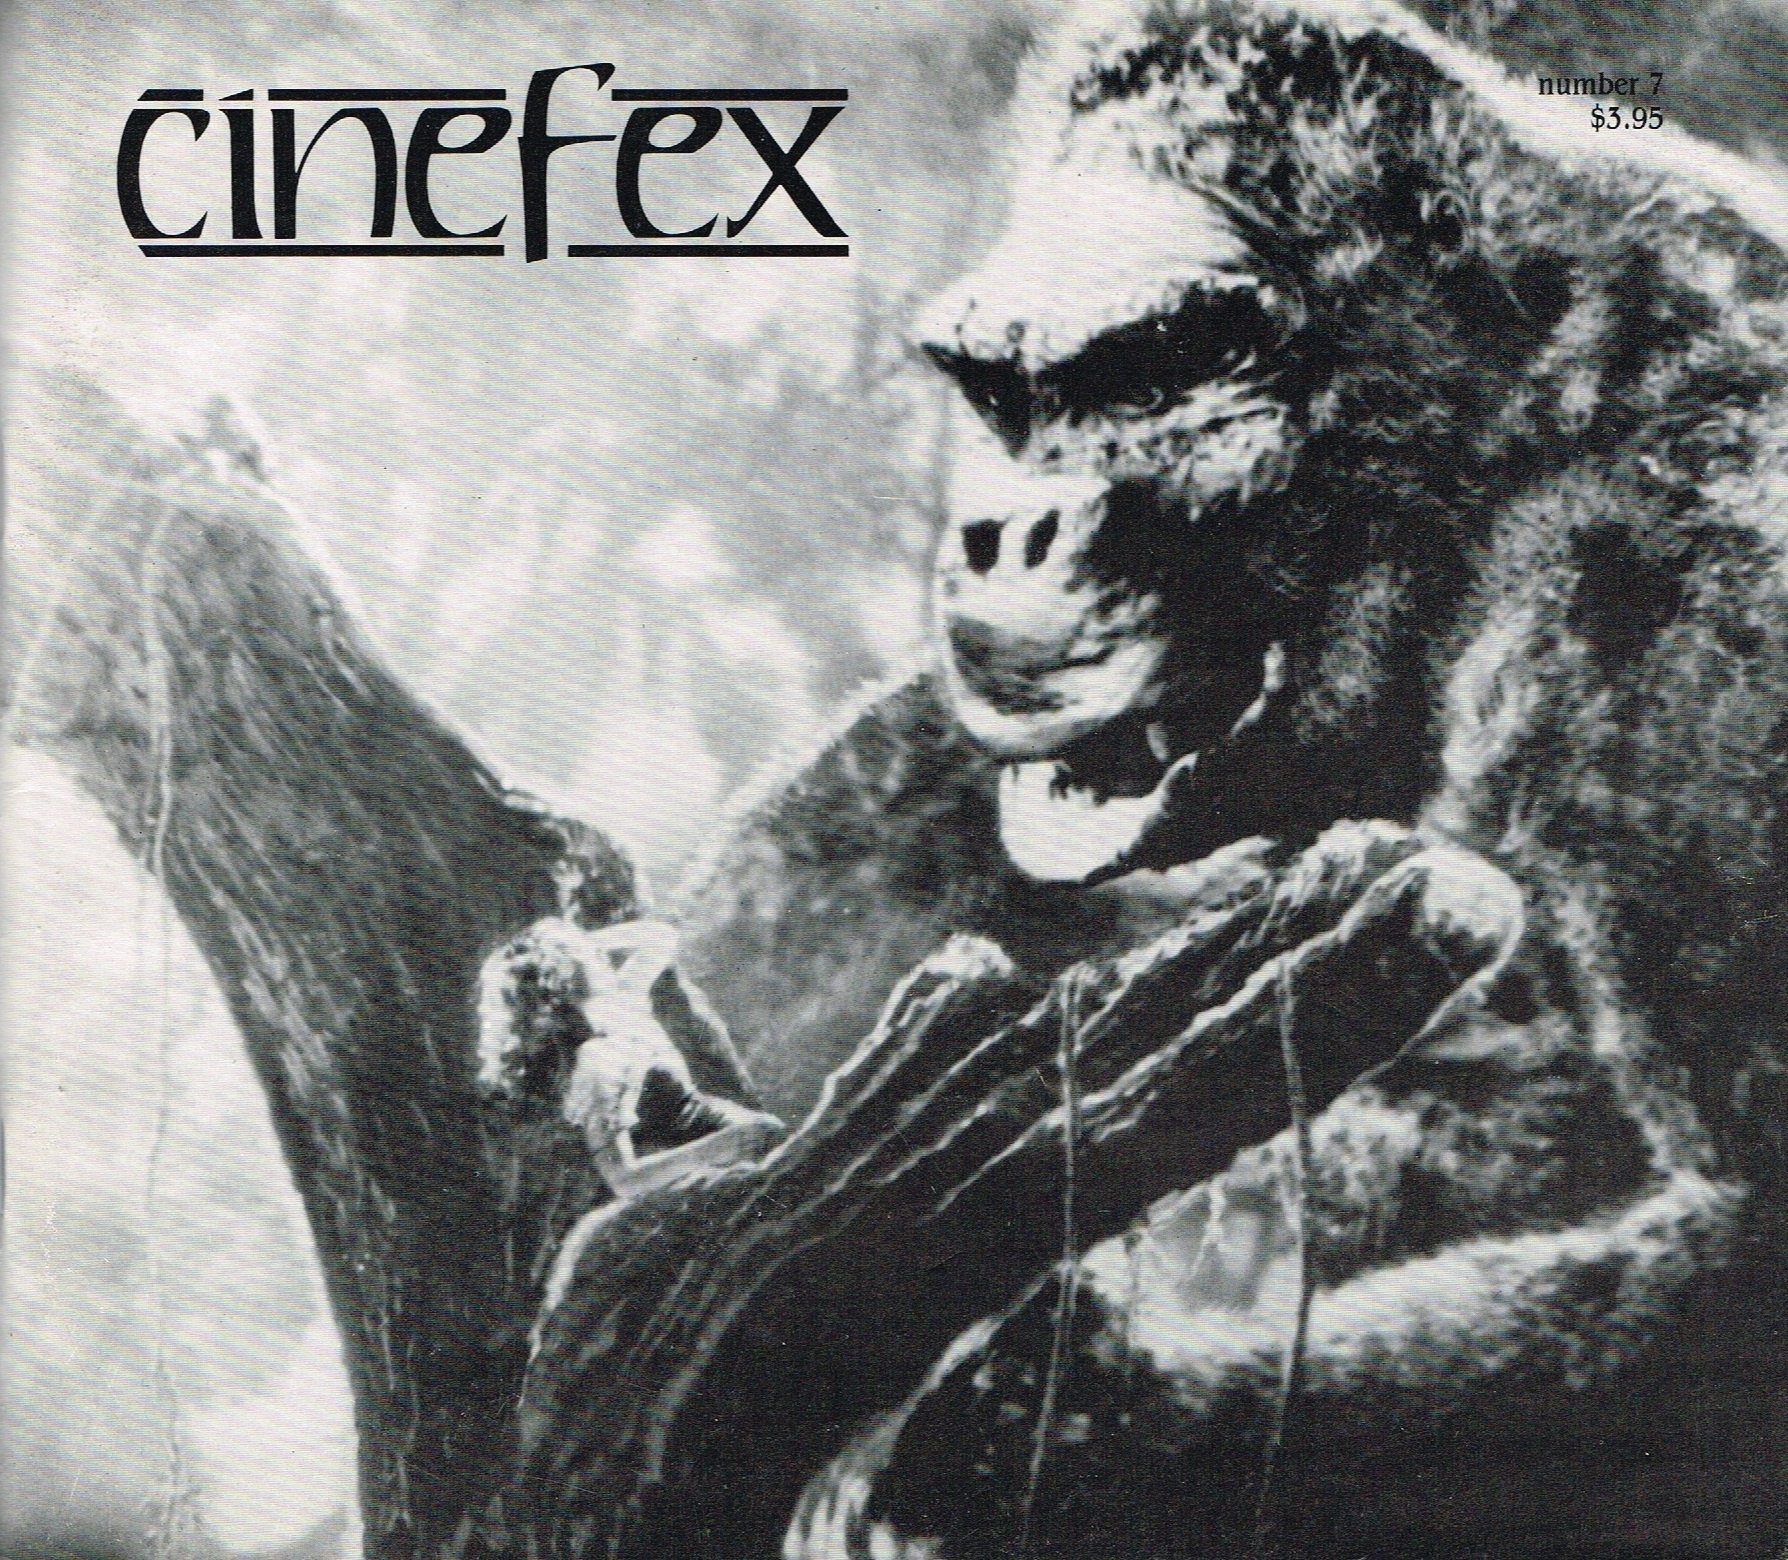 (CINEFEX). SHAY, DON, EDITOR & PUBLISHER - CINEFEX . . . THE JOURNAL OF CINEMATIC ILLUSIONS: NUMBER 7 - JANUARY 1982